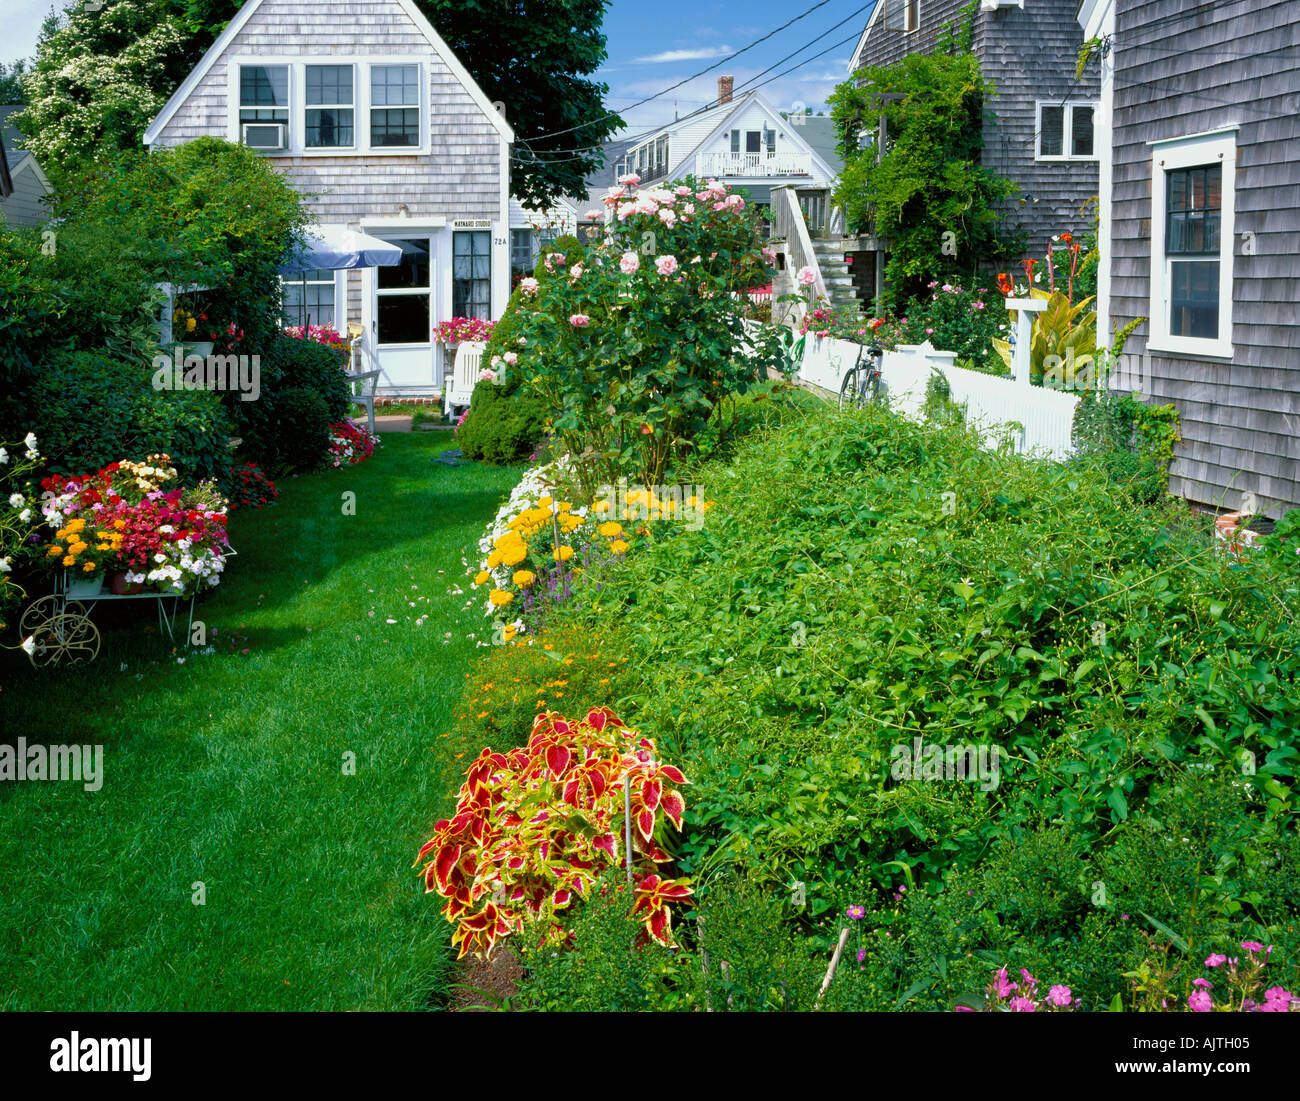 Cape Cod National Seashore, MA: Flower Garden With